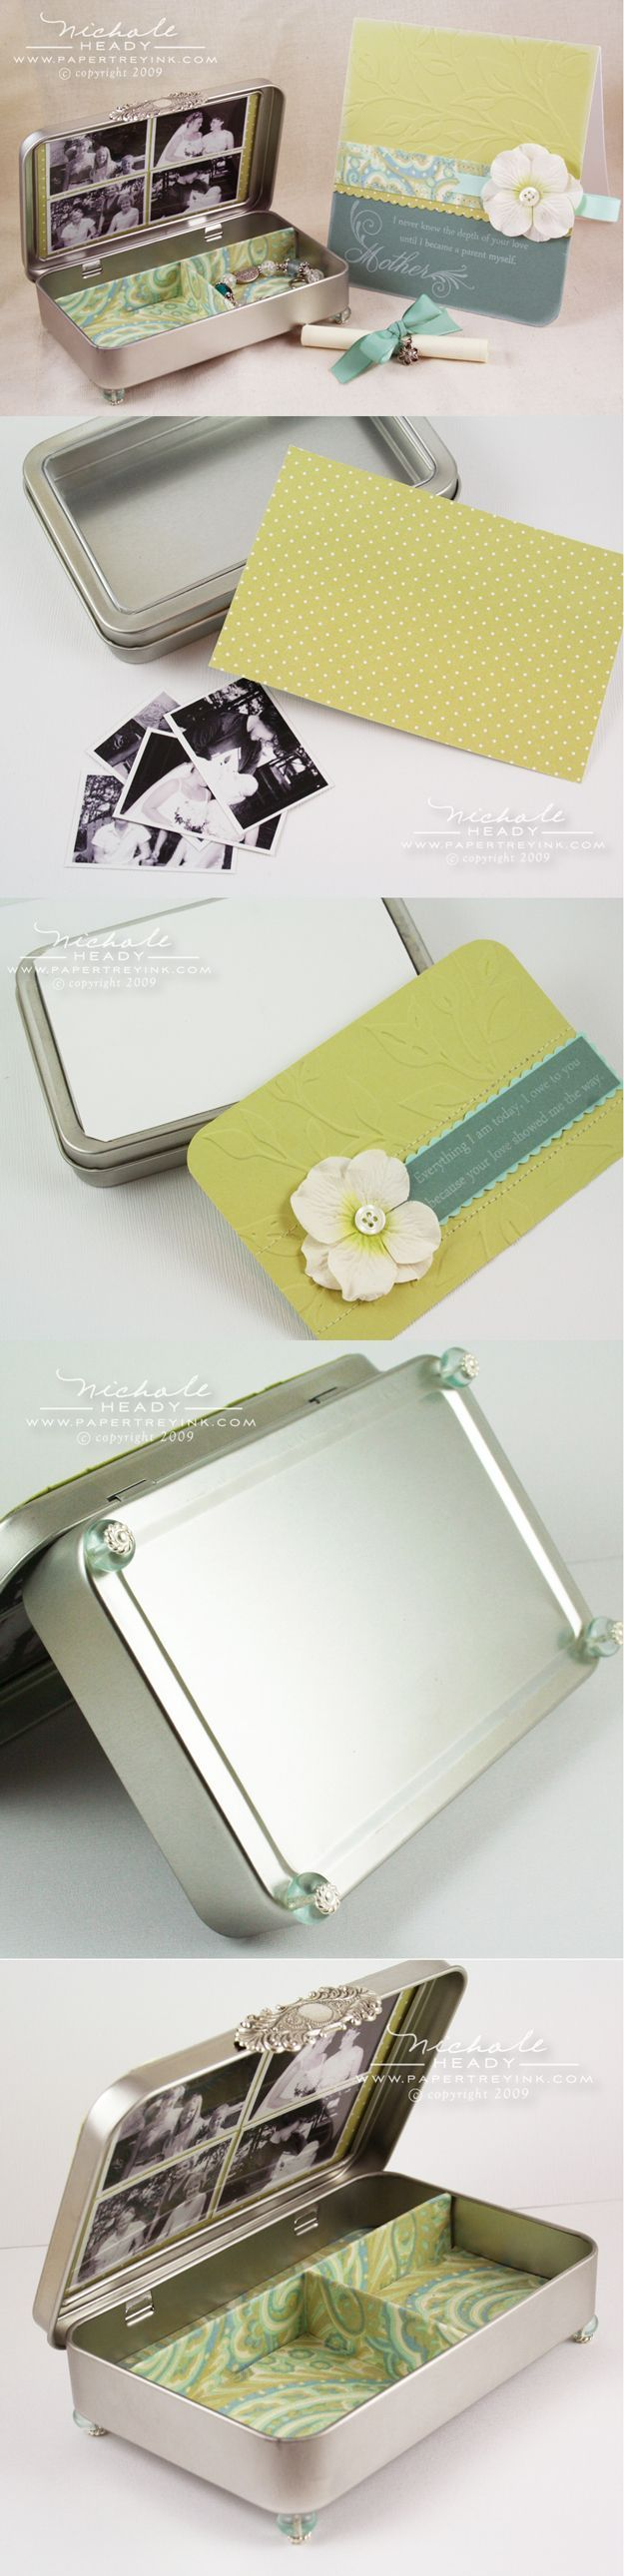 Easy DIY Jewelry Box   Cheap Personalized DIY Mother's Day Gift by DIY Ready at  http://diyready.com/diy-gifts-mothers-day-ideas/